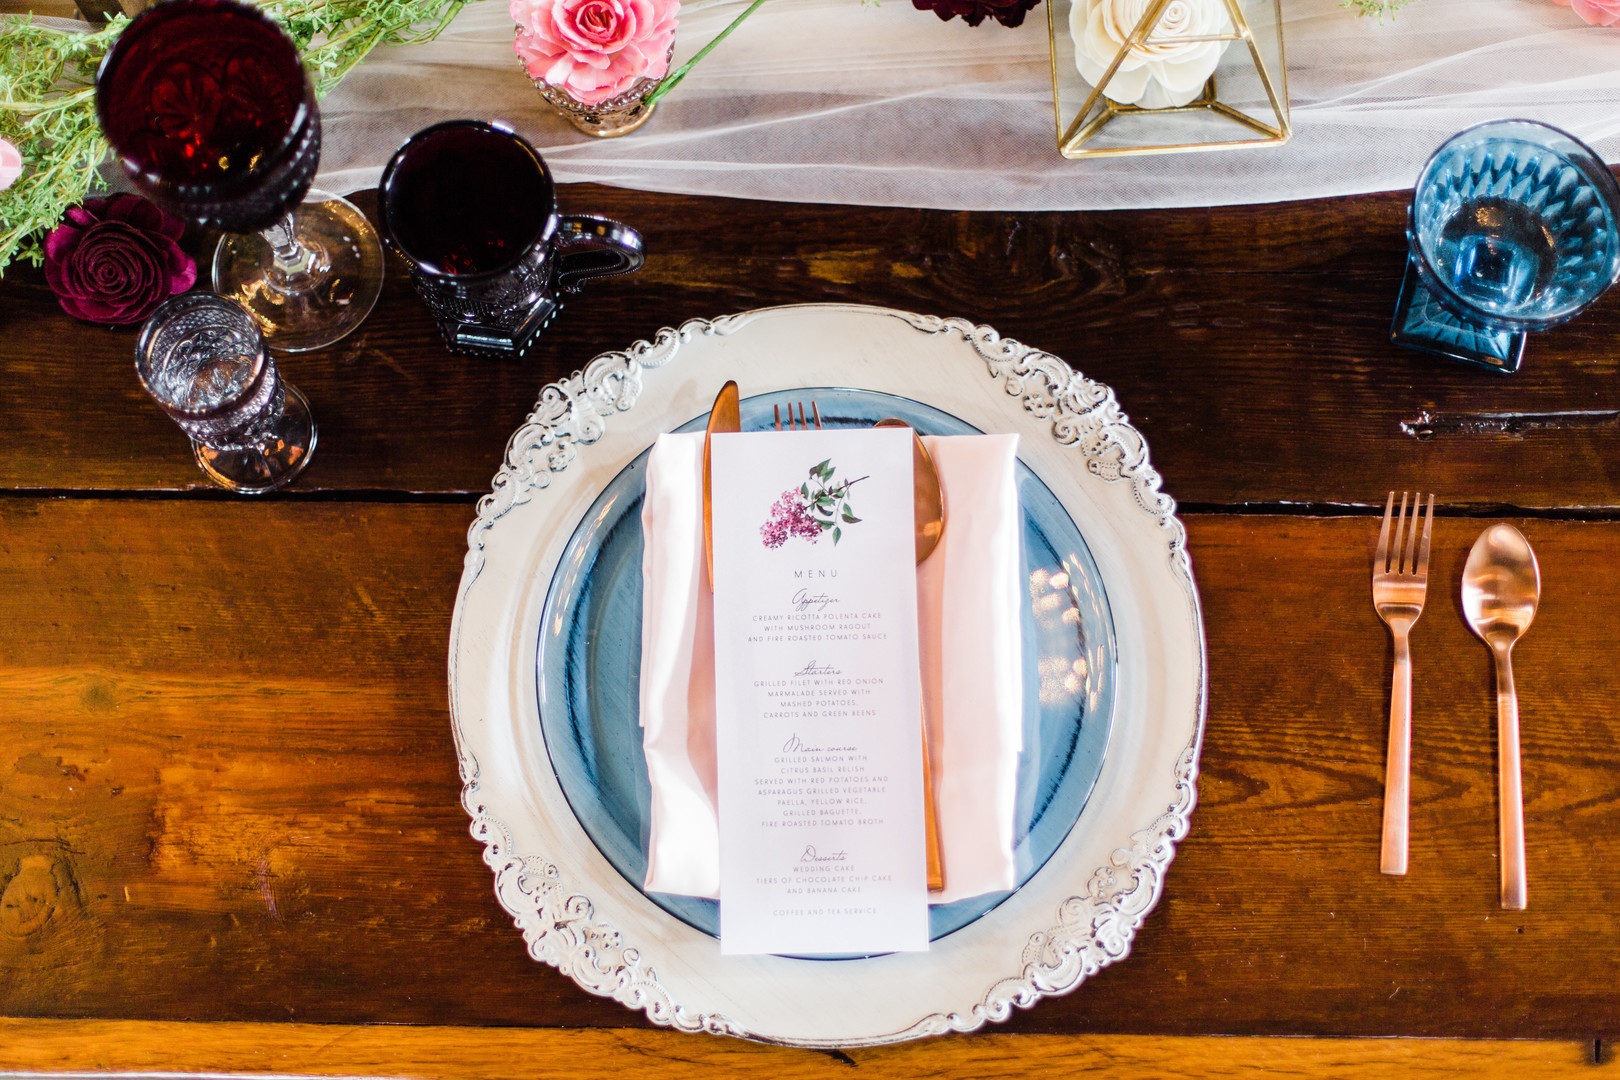 Barn wedding place setting: Rustic barn wedding inspiration captured by Grace Rios Photography. See more fall wedding ideas at CHItheeWED.com!